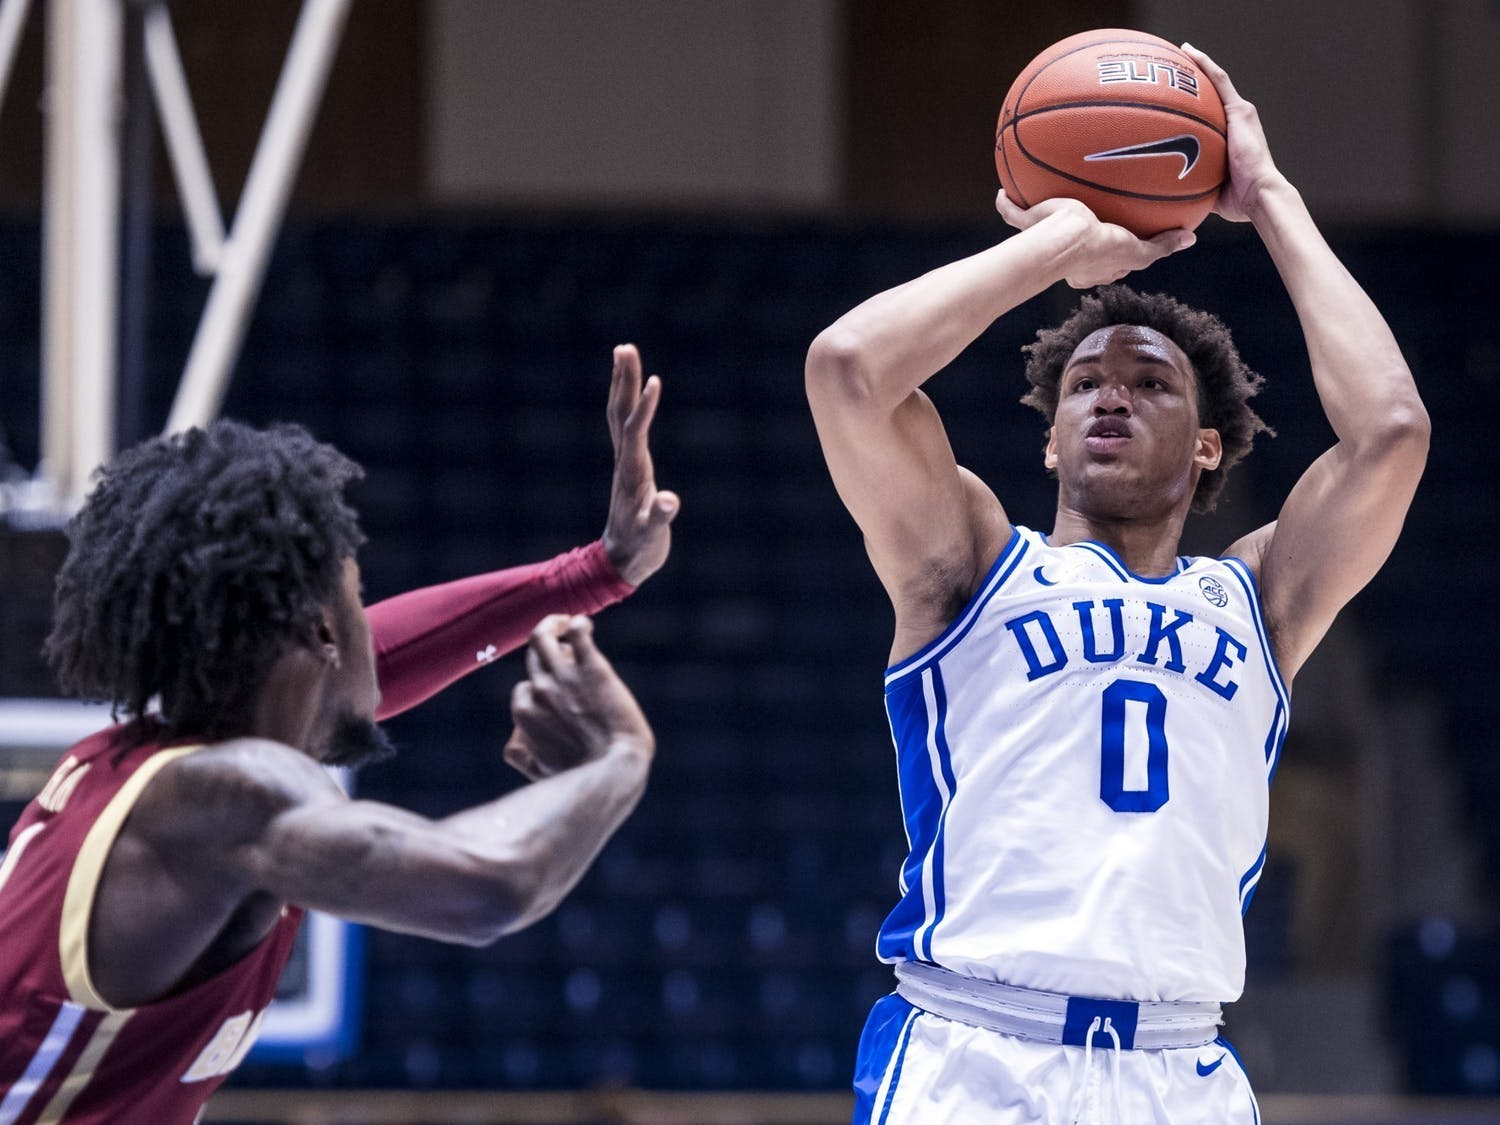 Wendell Moore Jr. had his best games against Notre Dame, Boston College and Georgia Tech this season.